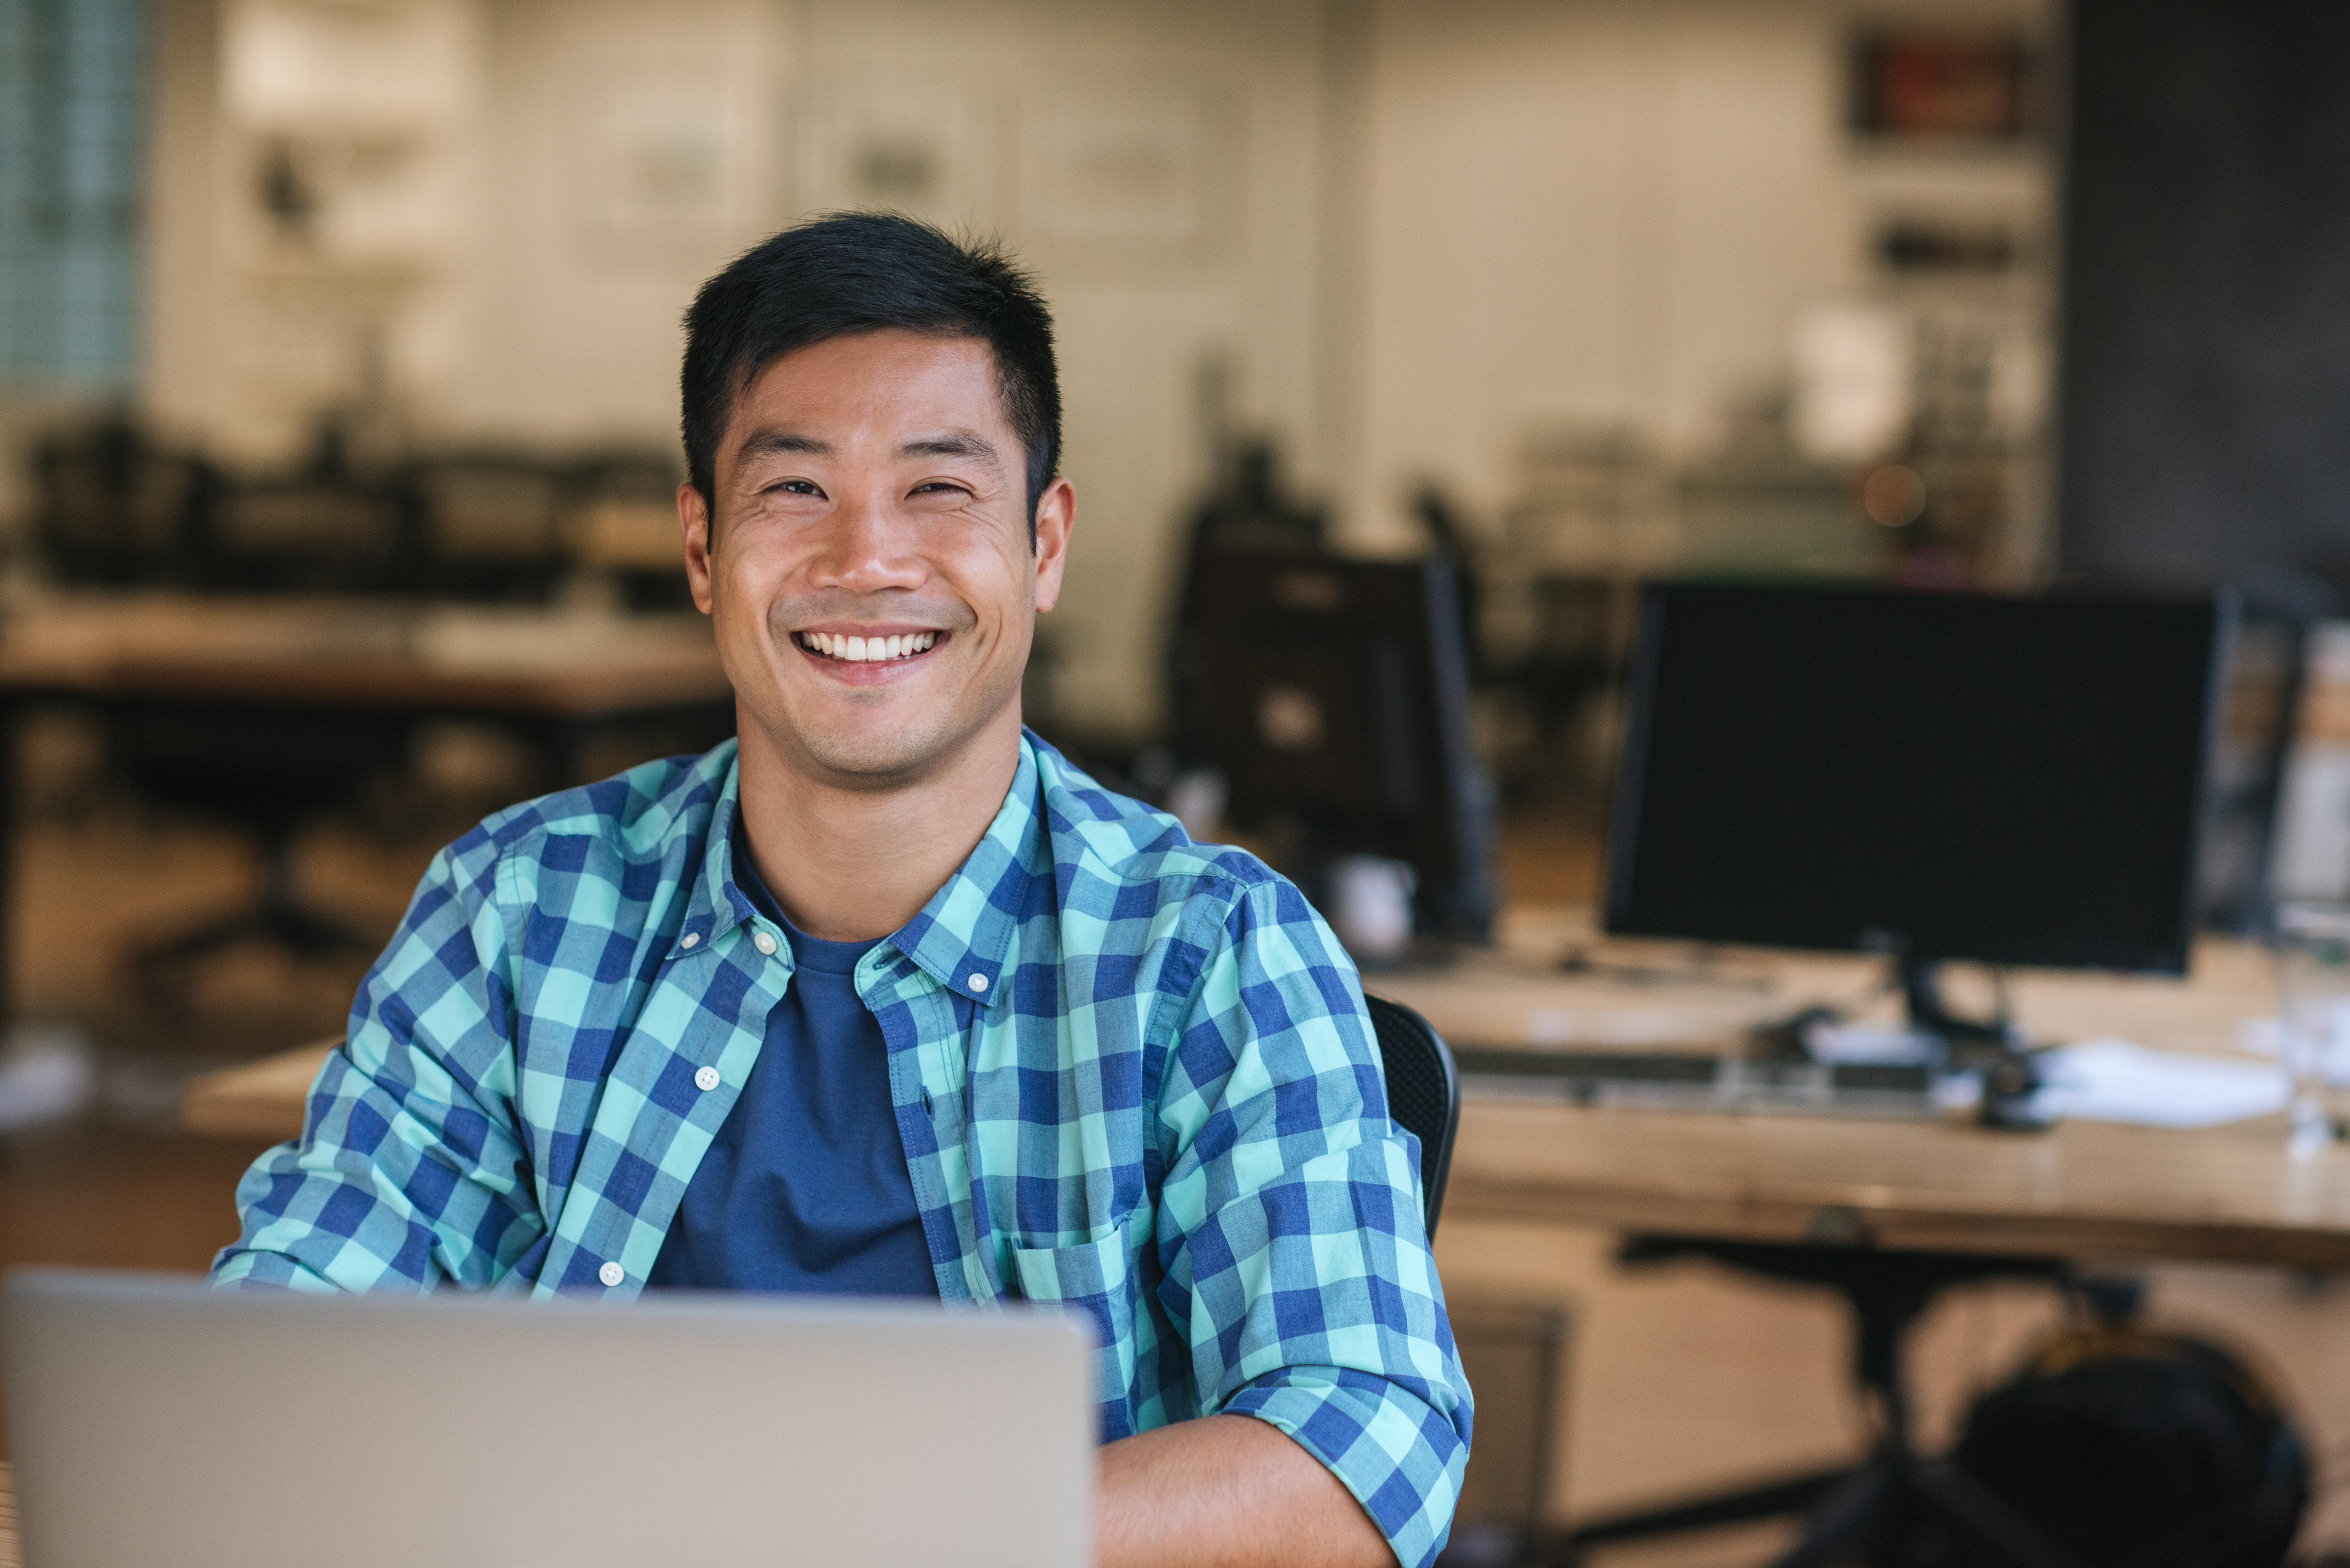 man smiling looking up from laptop